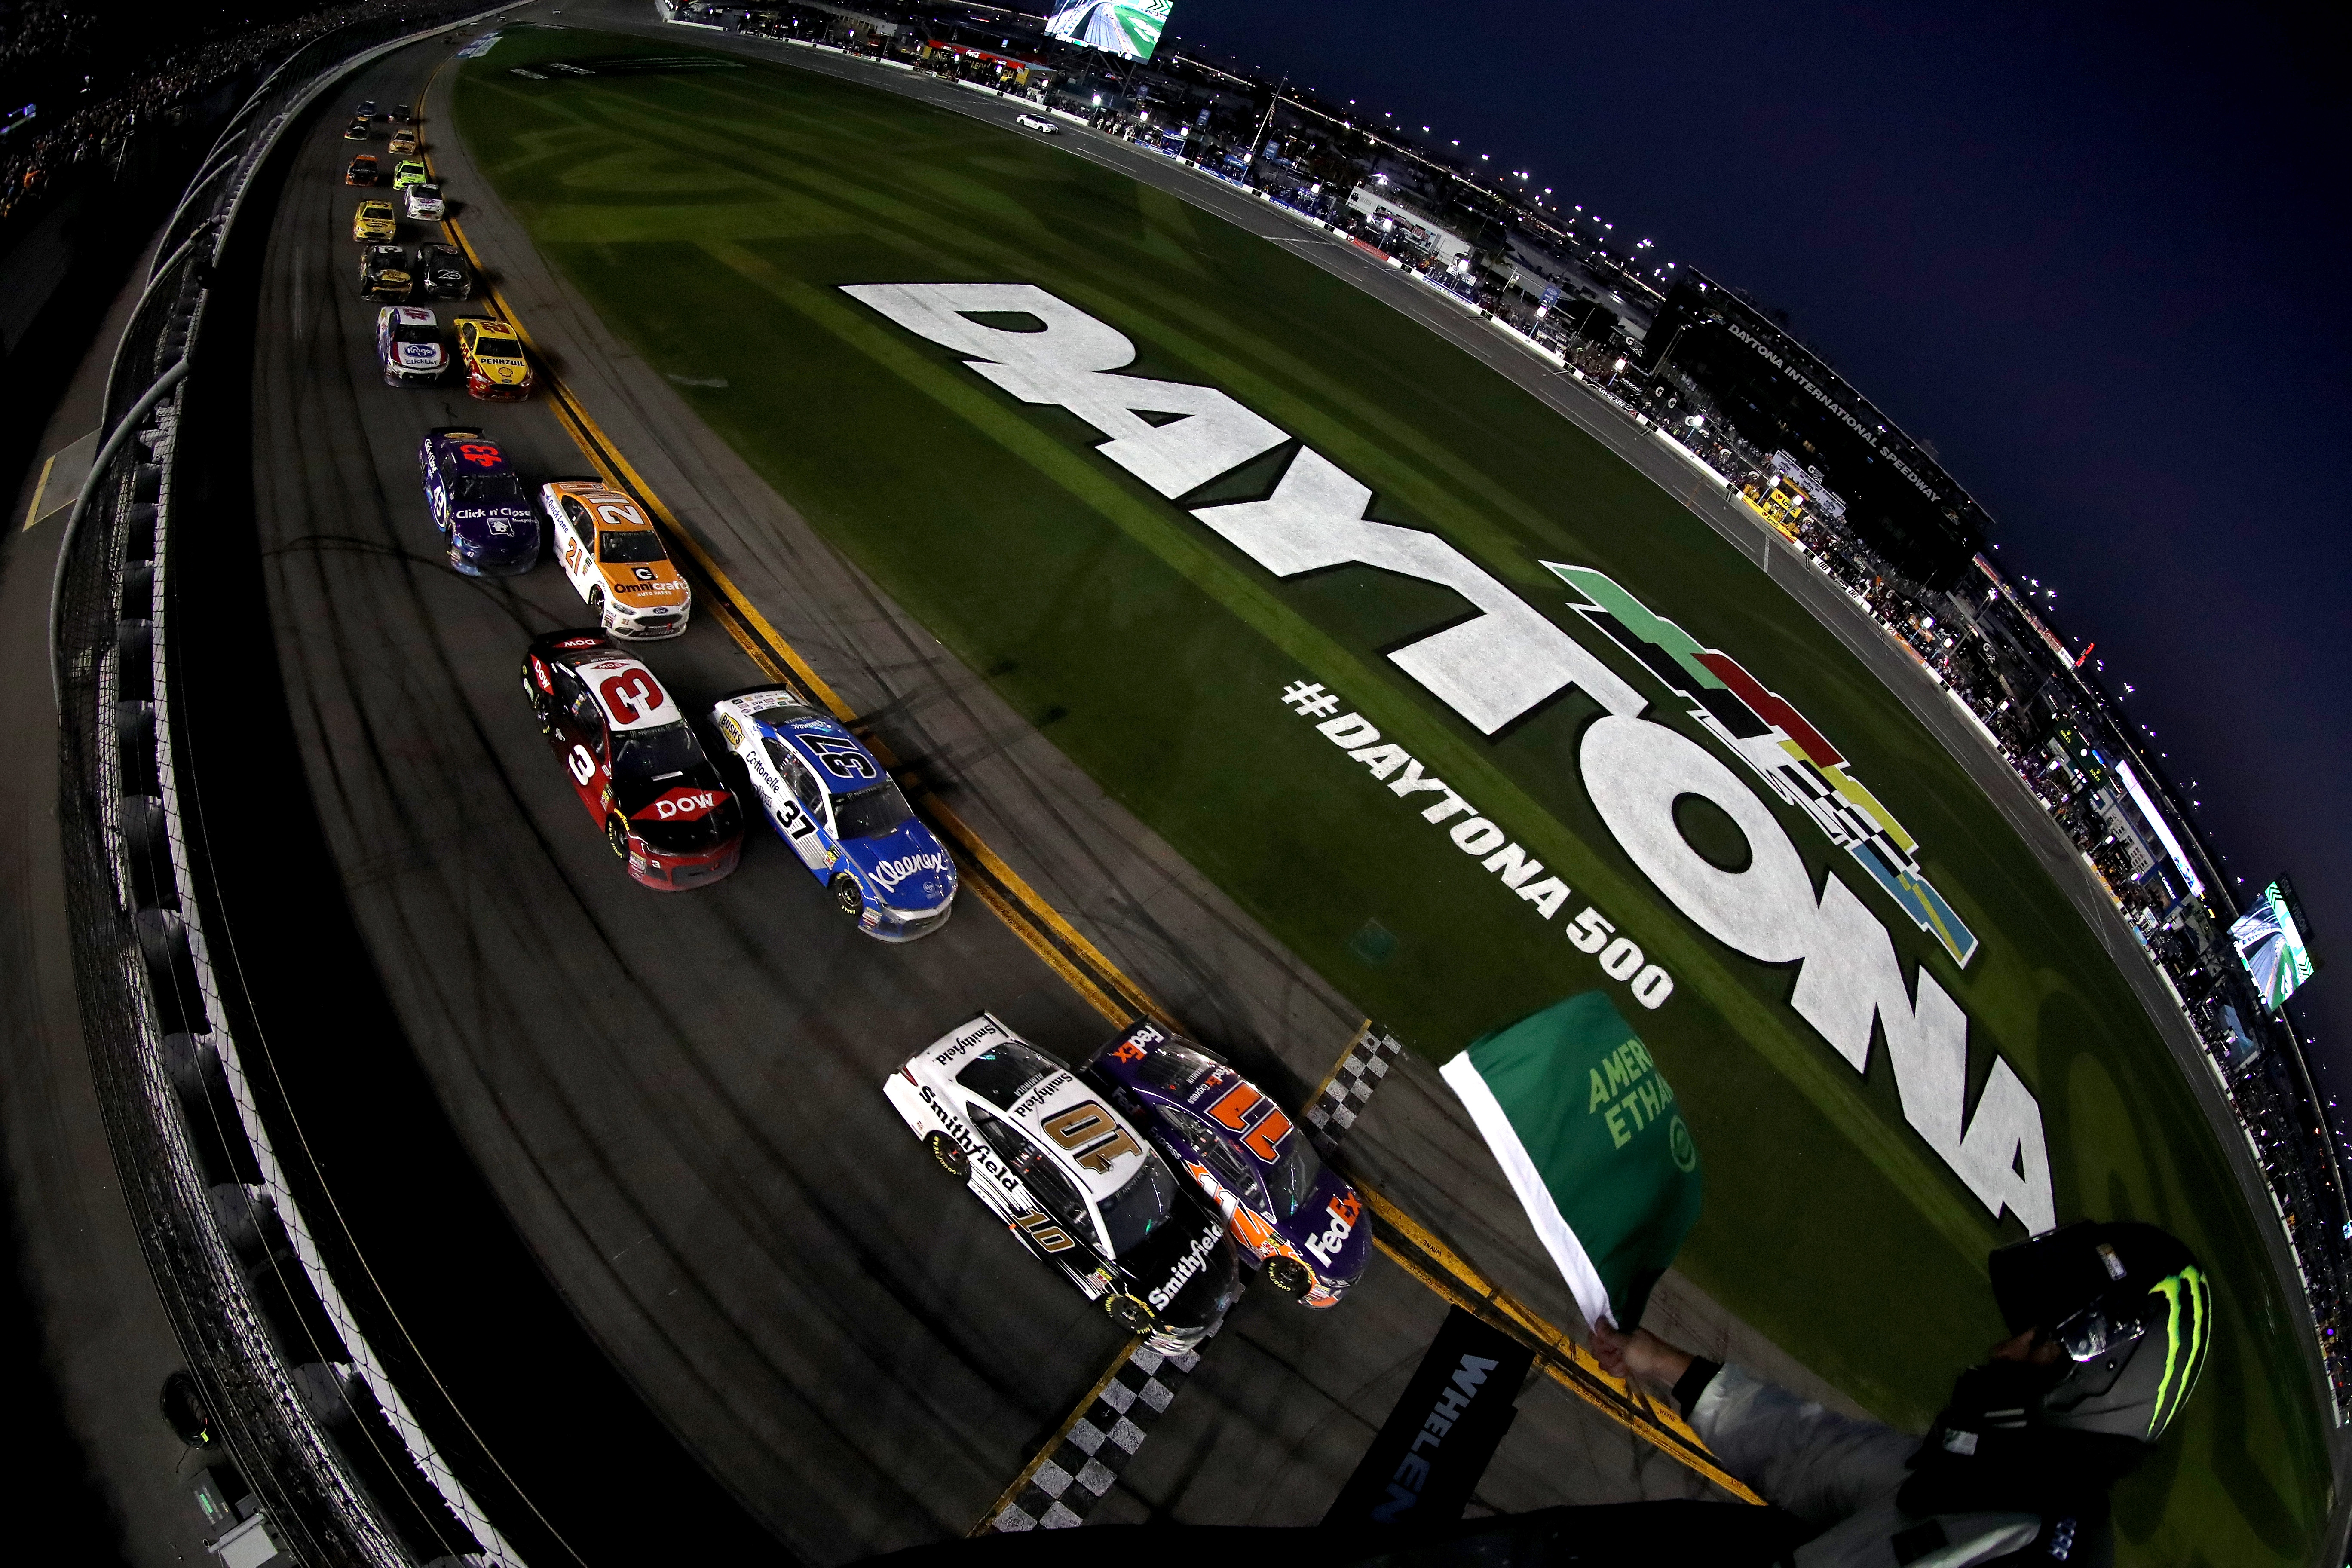 Austin Dillon takes NYC by storm in Daytona 500 victory lap